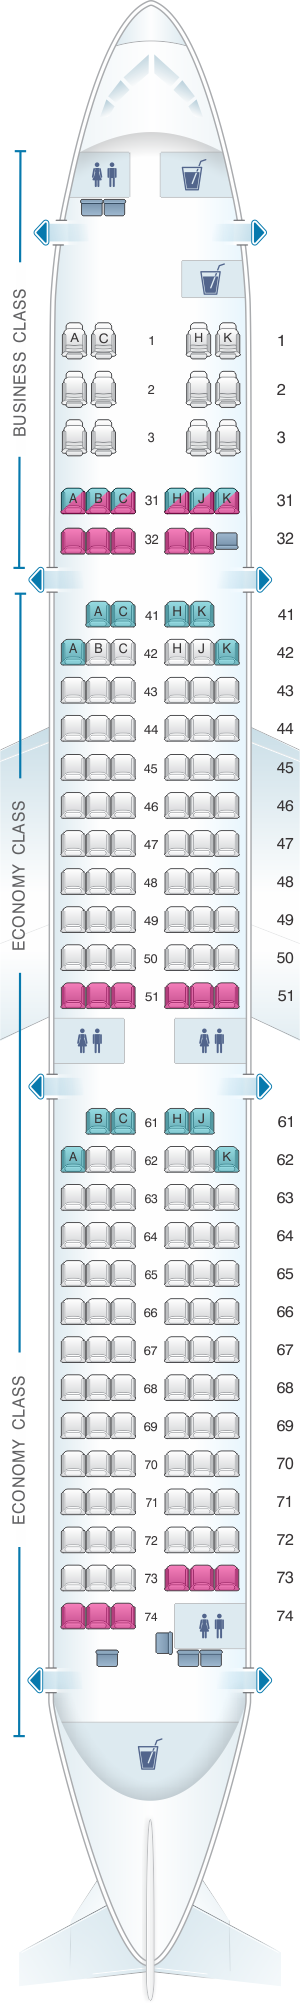 Seat map for Philippine Airlines Airbus A321 200neo